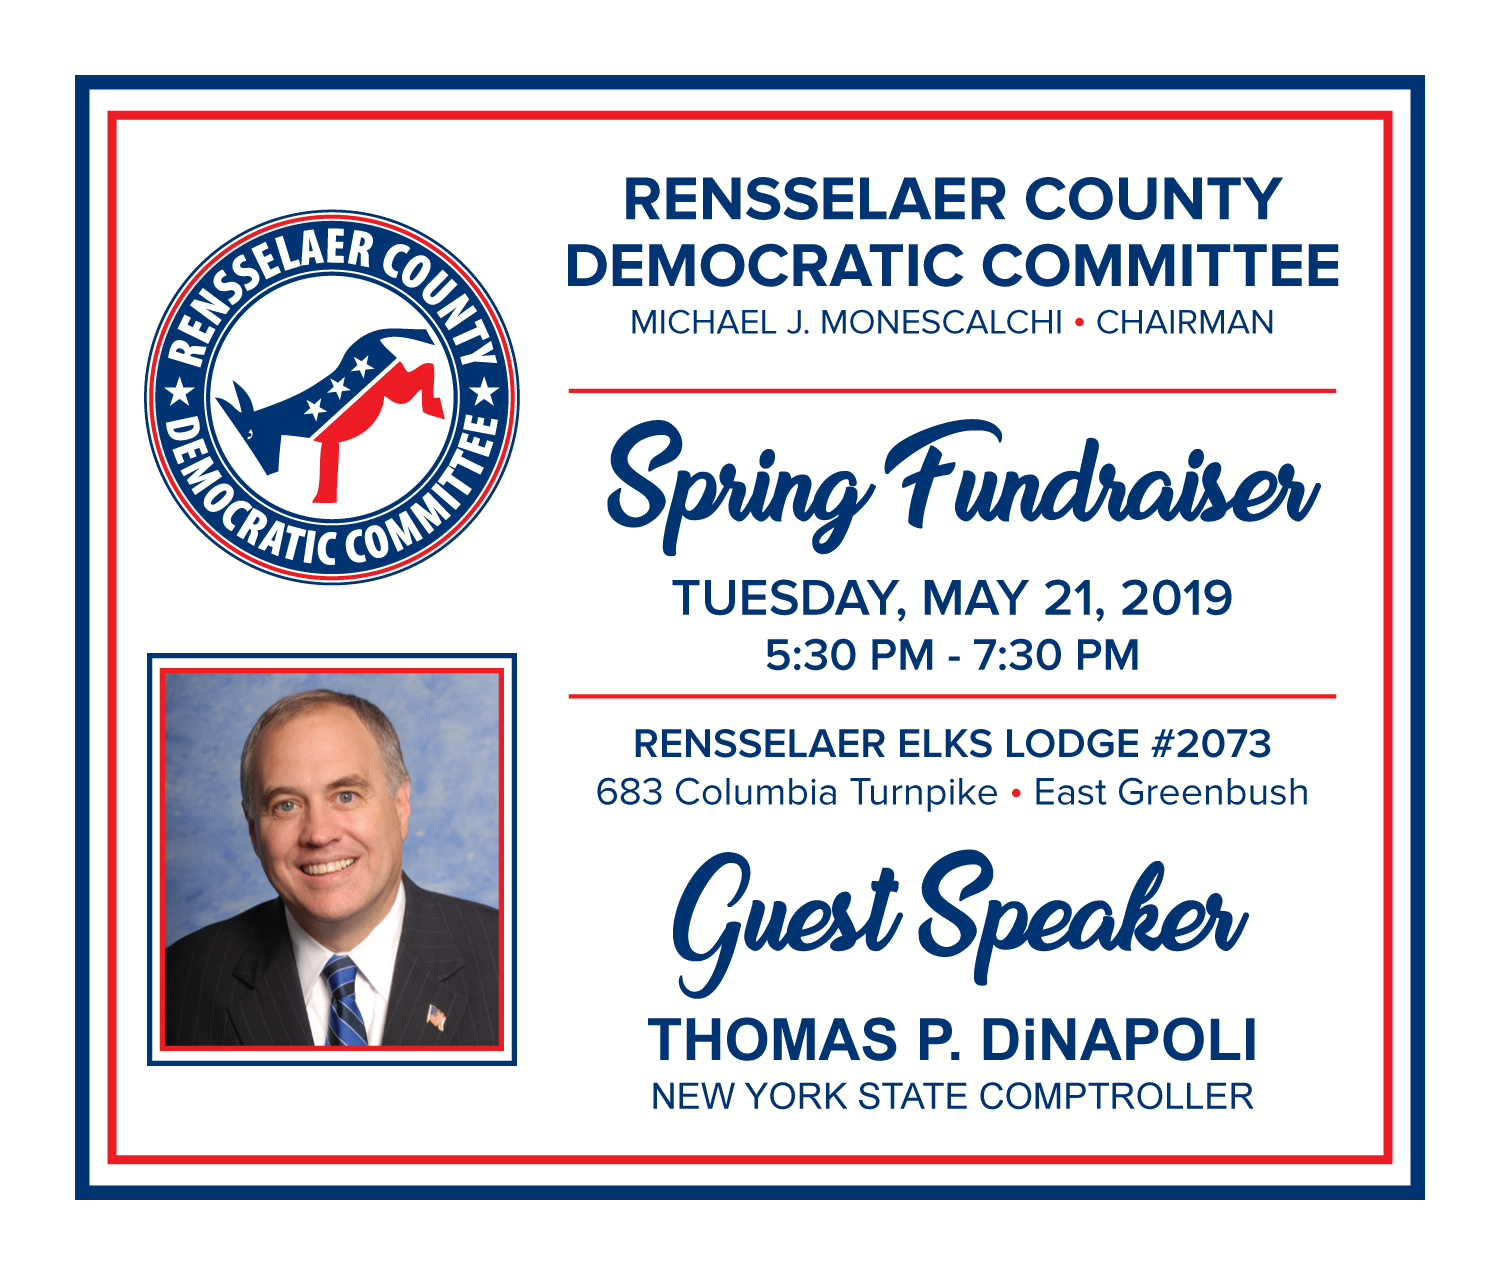 RCDC 2019 Spring Fundraiser Graphic.jpg